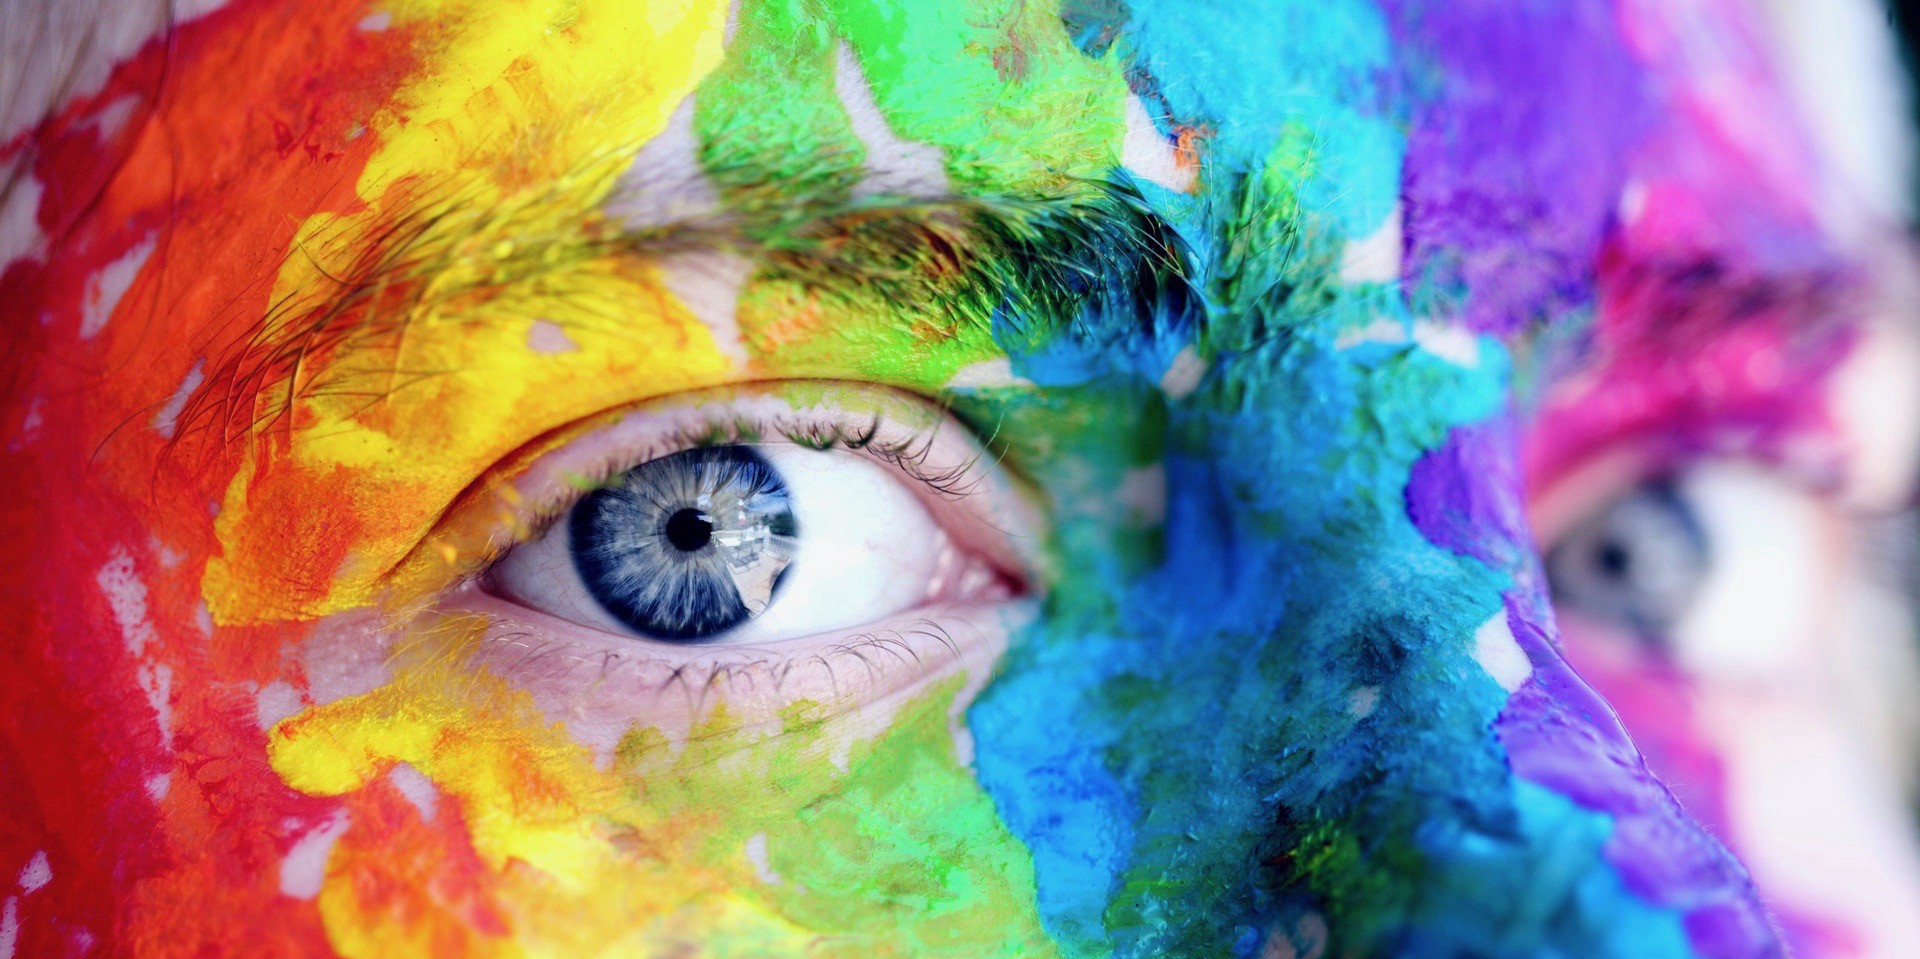 Close on a pair of eyes in a face splattered with rainbow paint